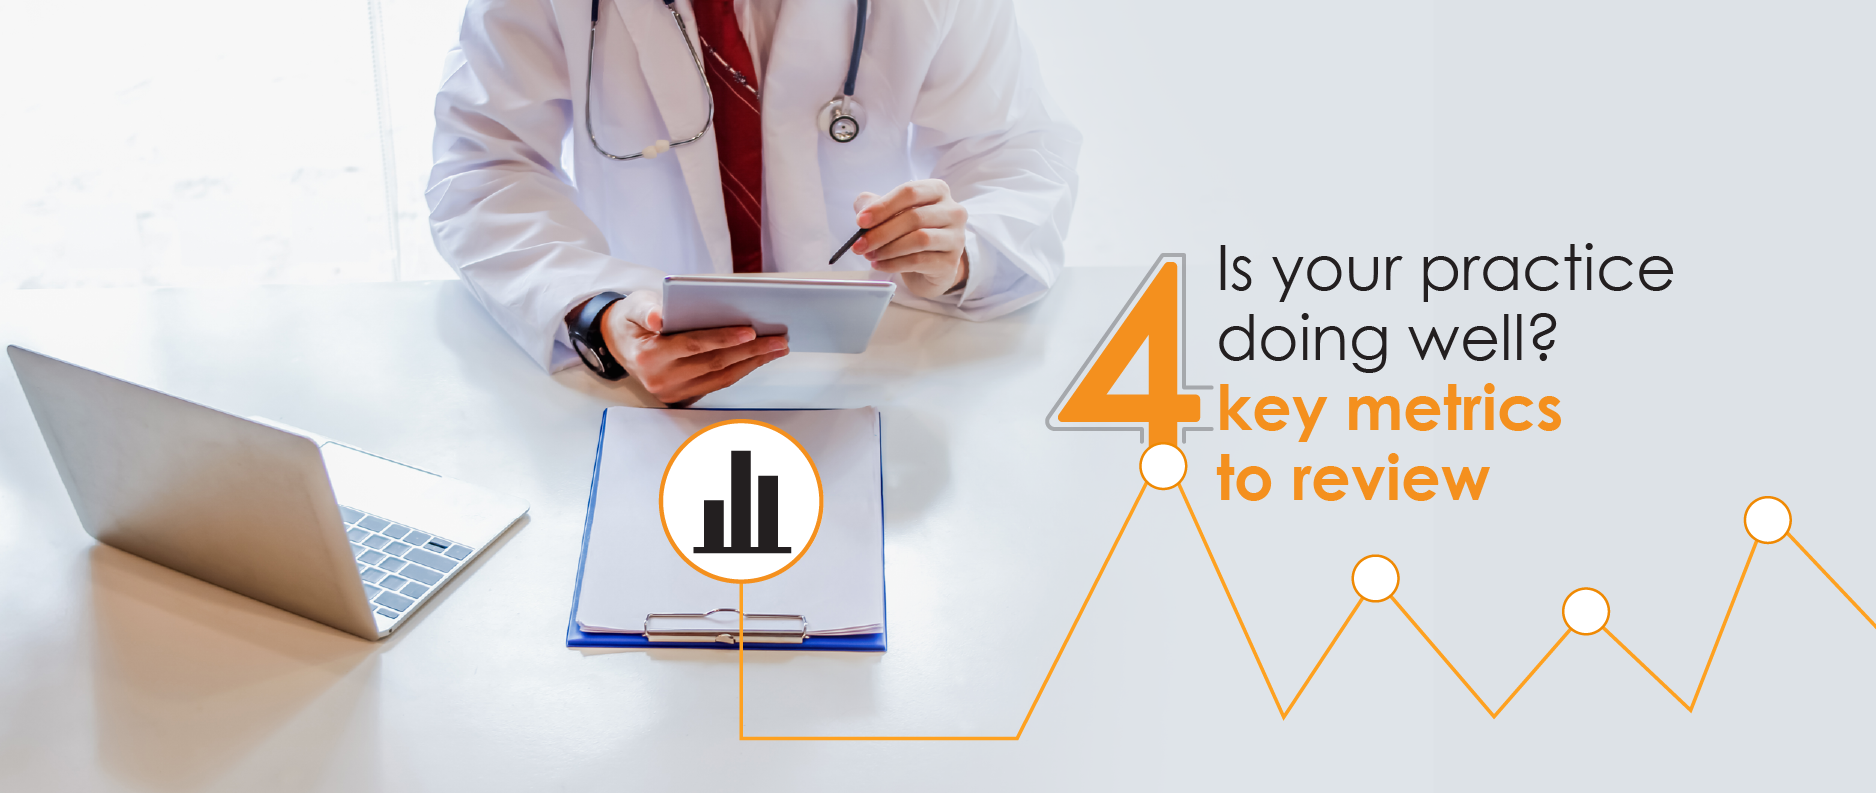 Metrics for medical practices